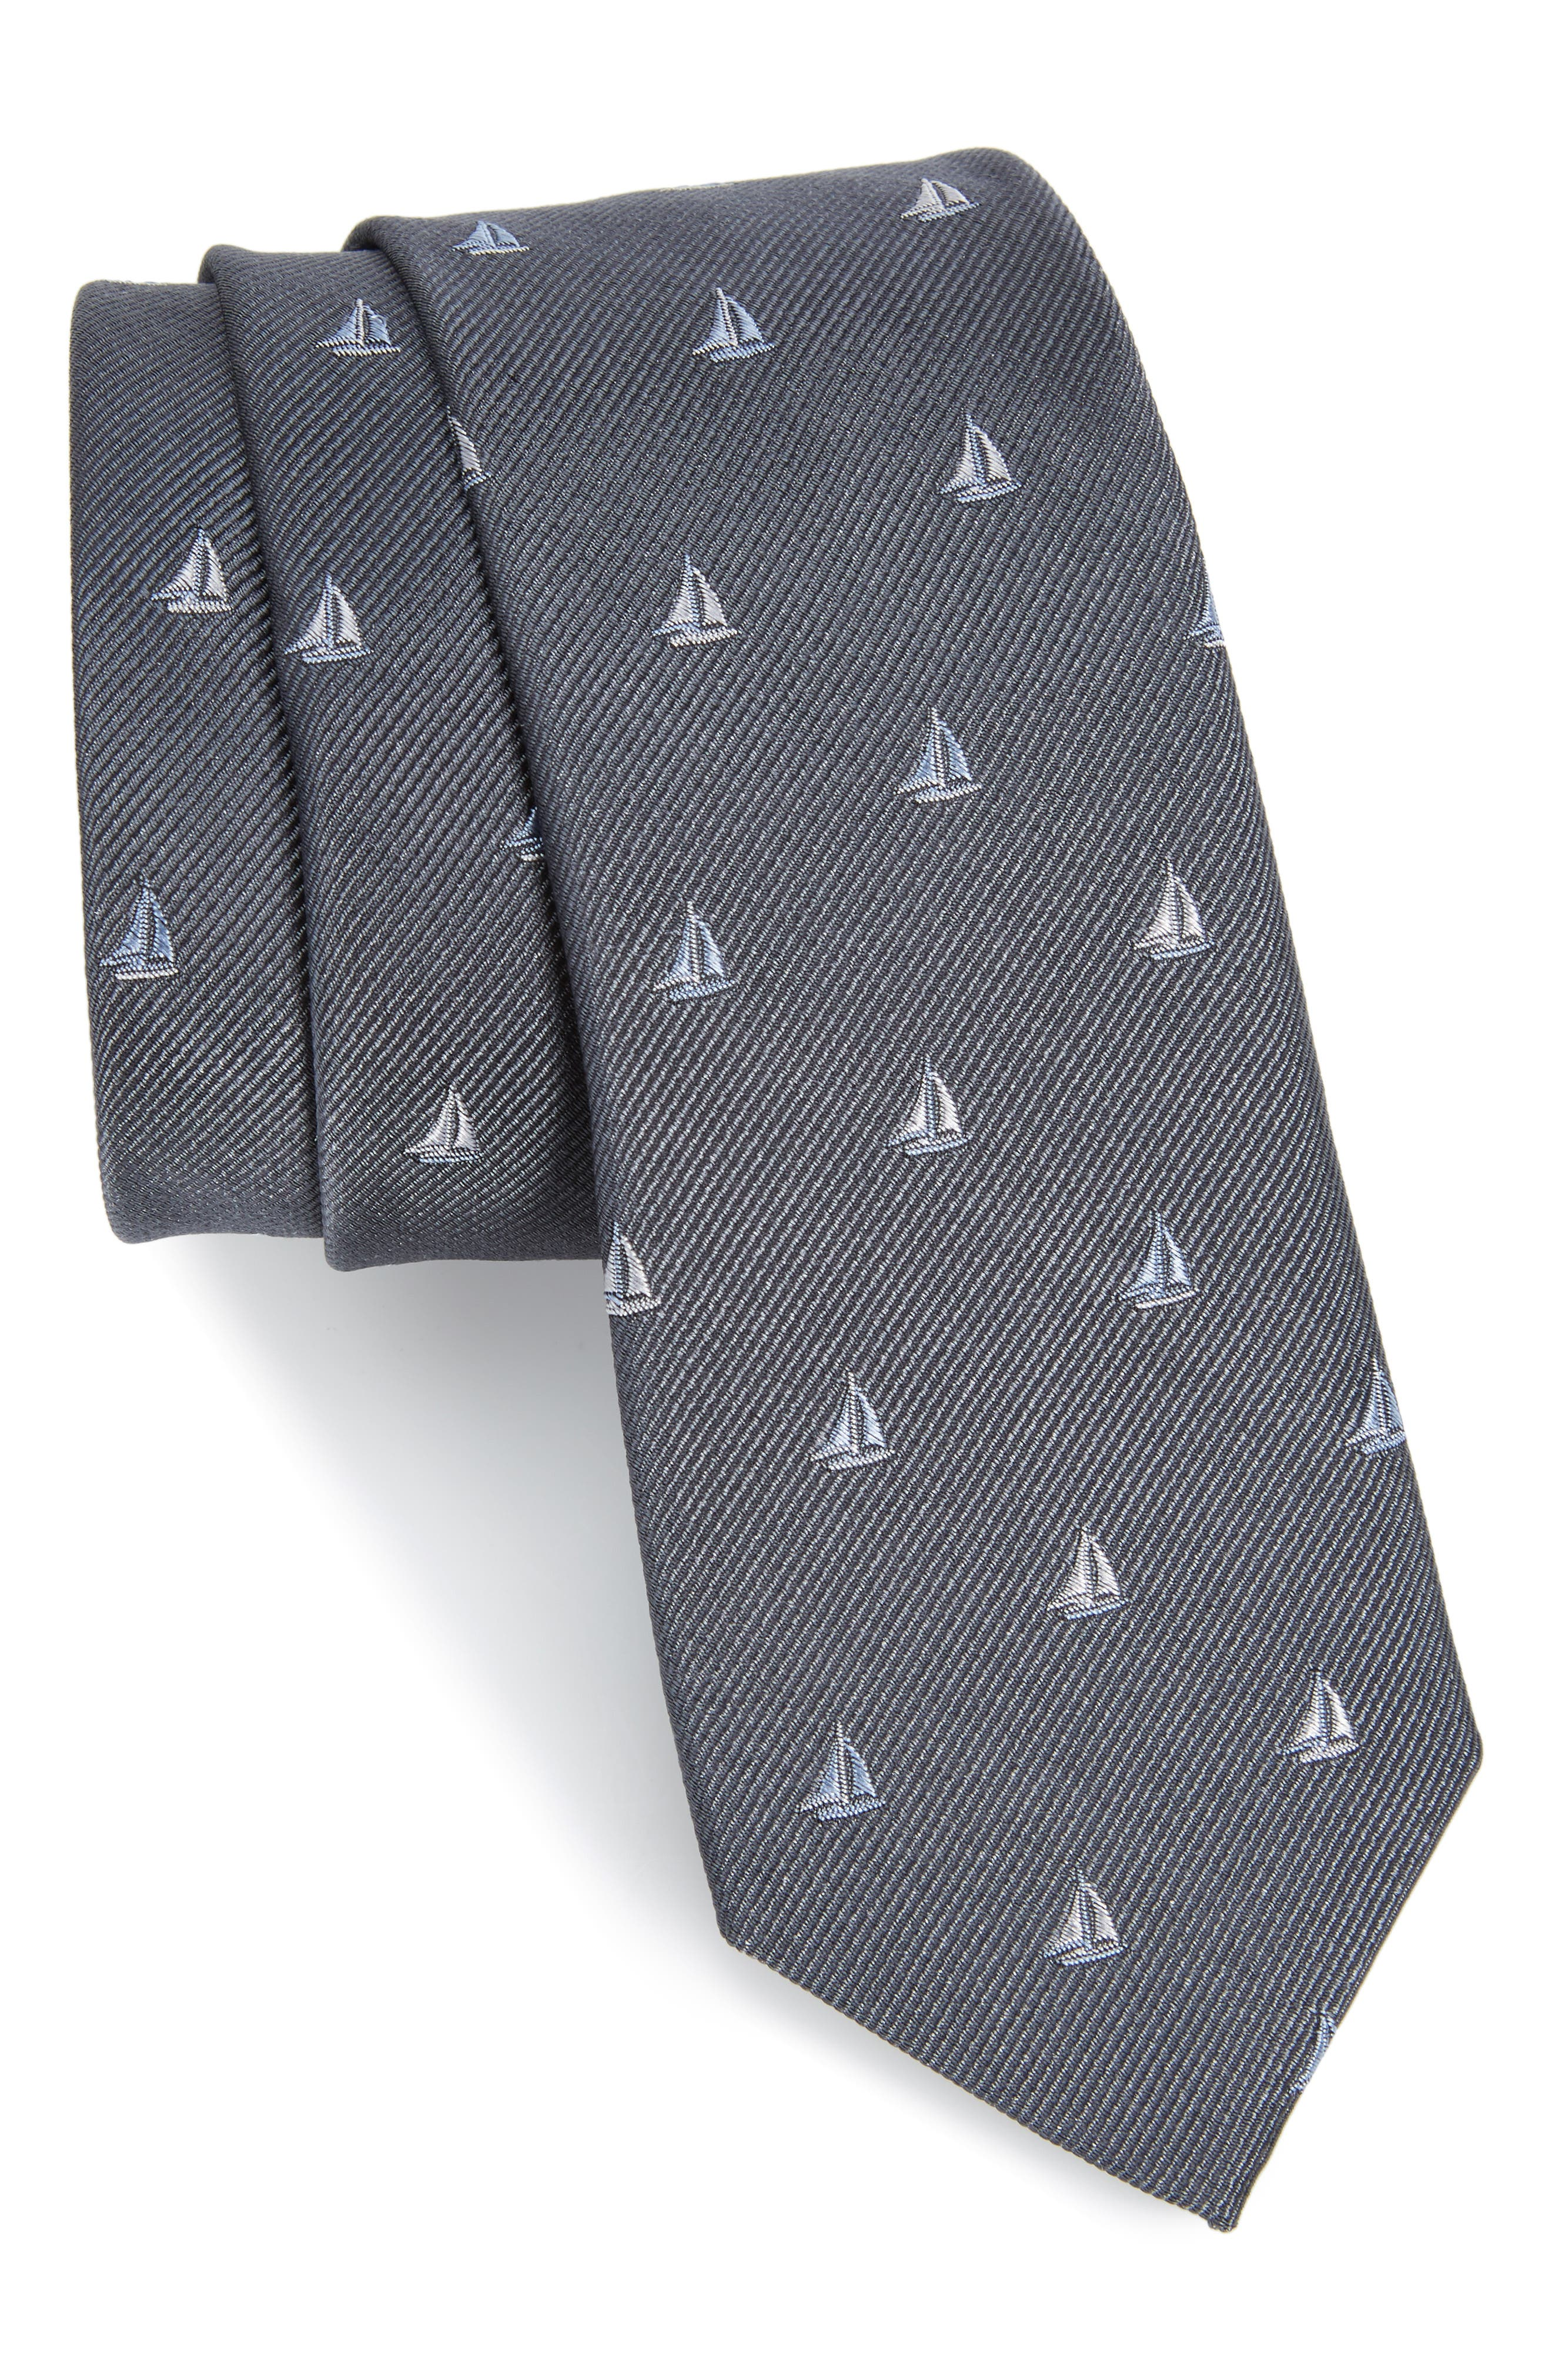 Sailboat Silk Skinny Tie,                         Main,                         color, 010